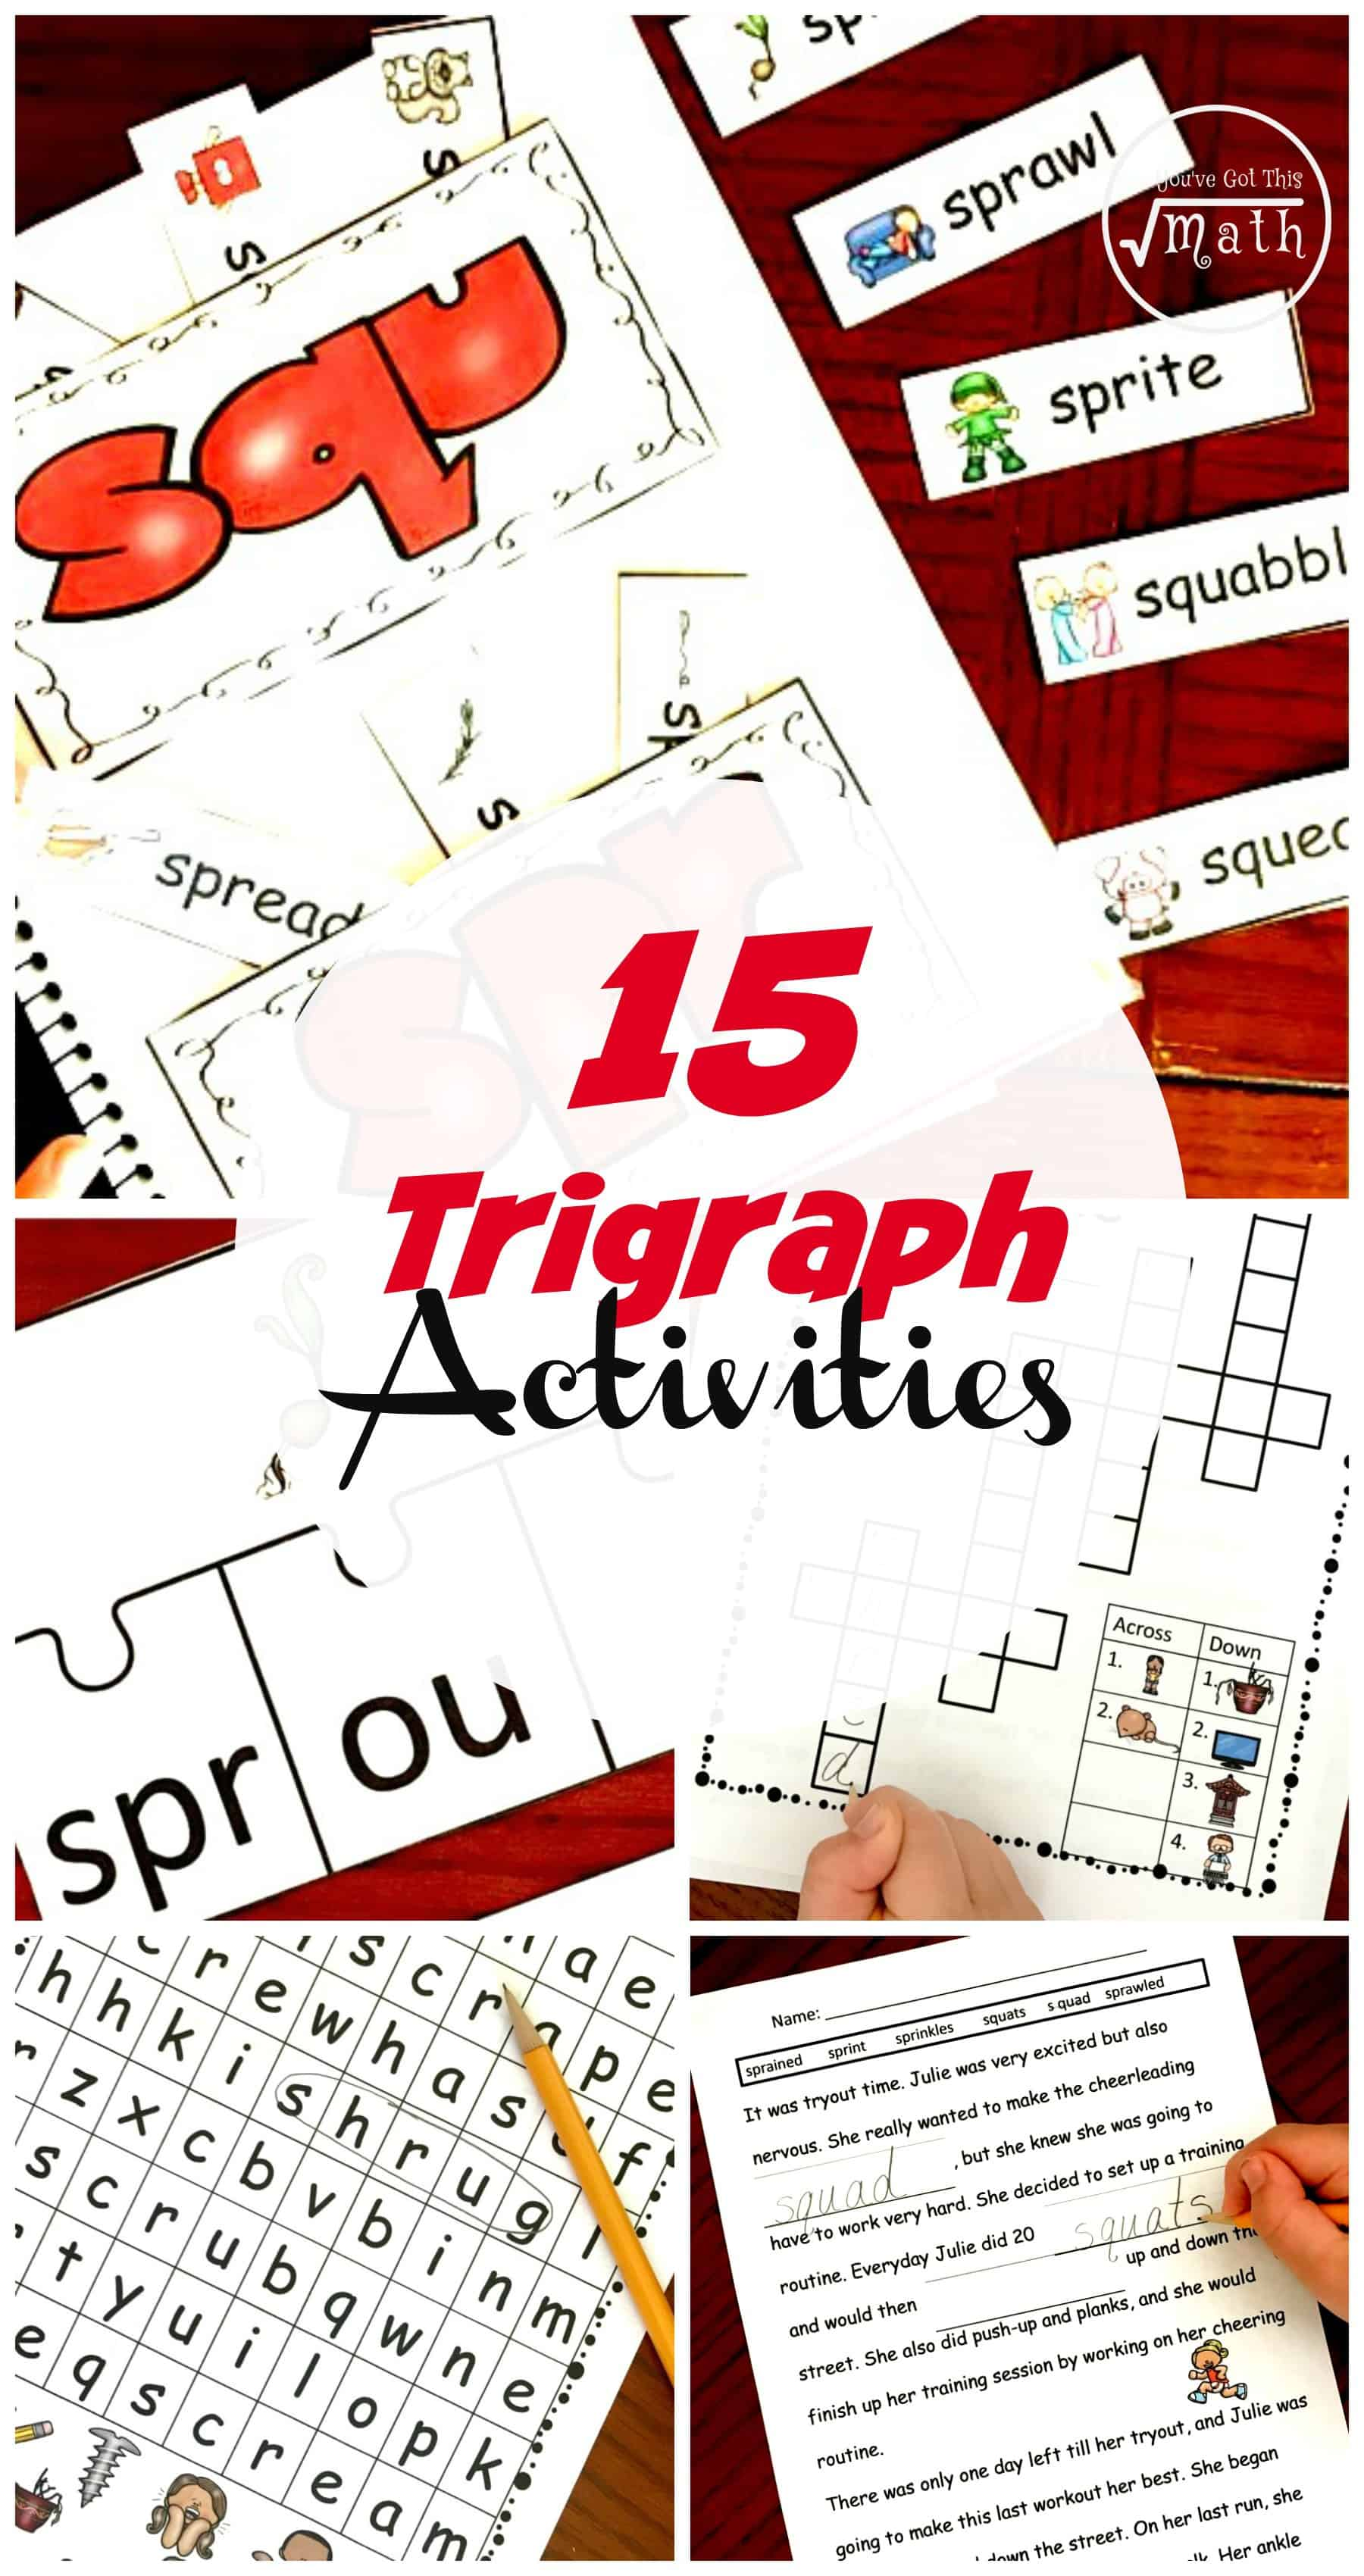 Ready to teach trigraphs? Check out these 15 hands-on and fun trigraph activities to help your students learn shr, scr, spr, sqr, str, and thr trigraphs or consonant clusters.